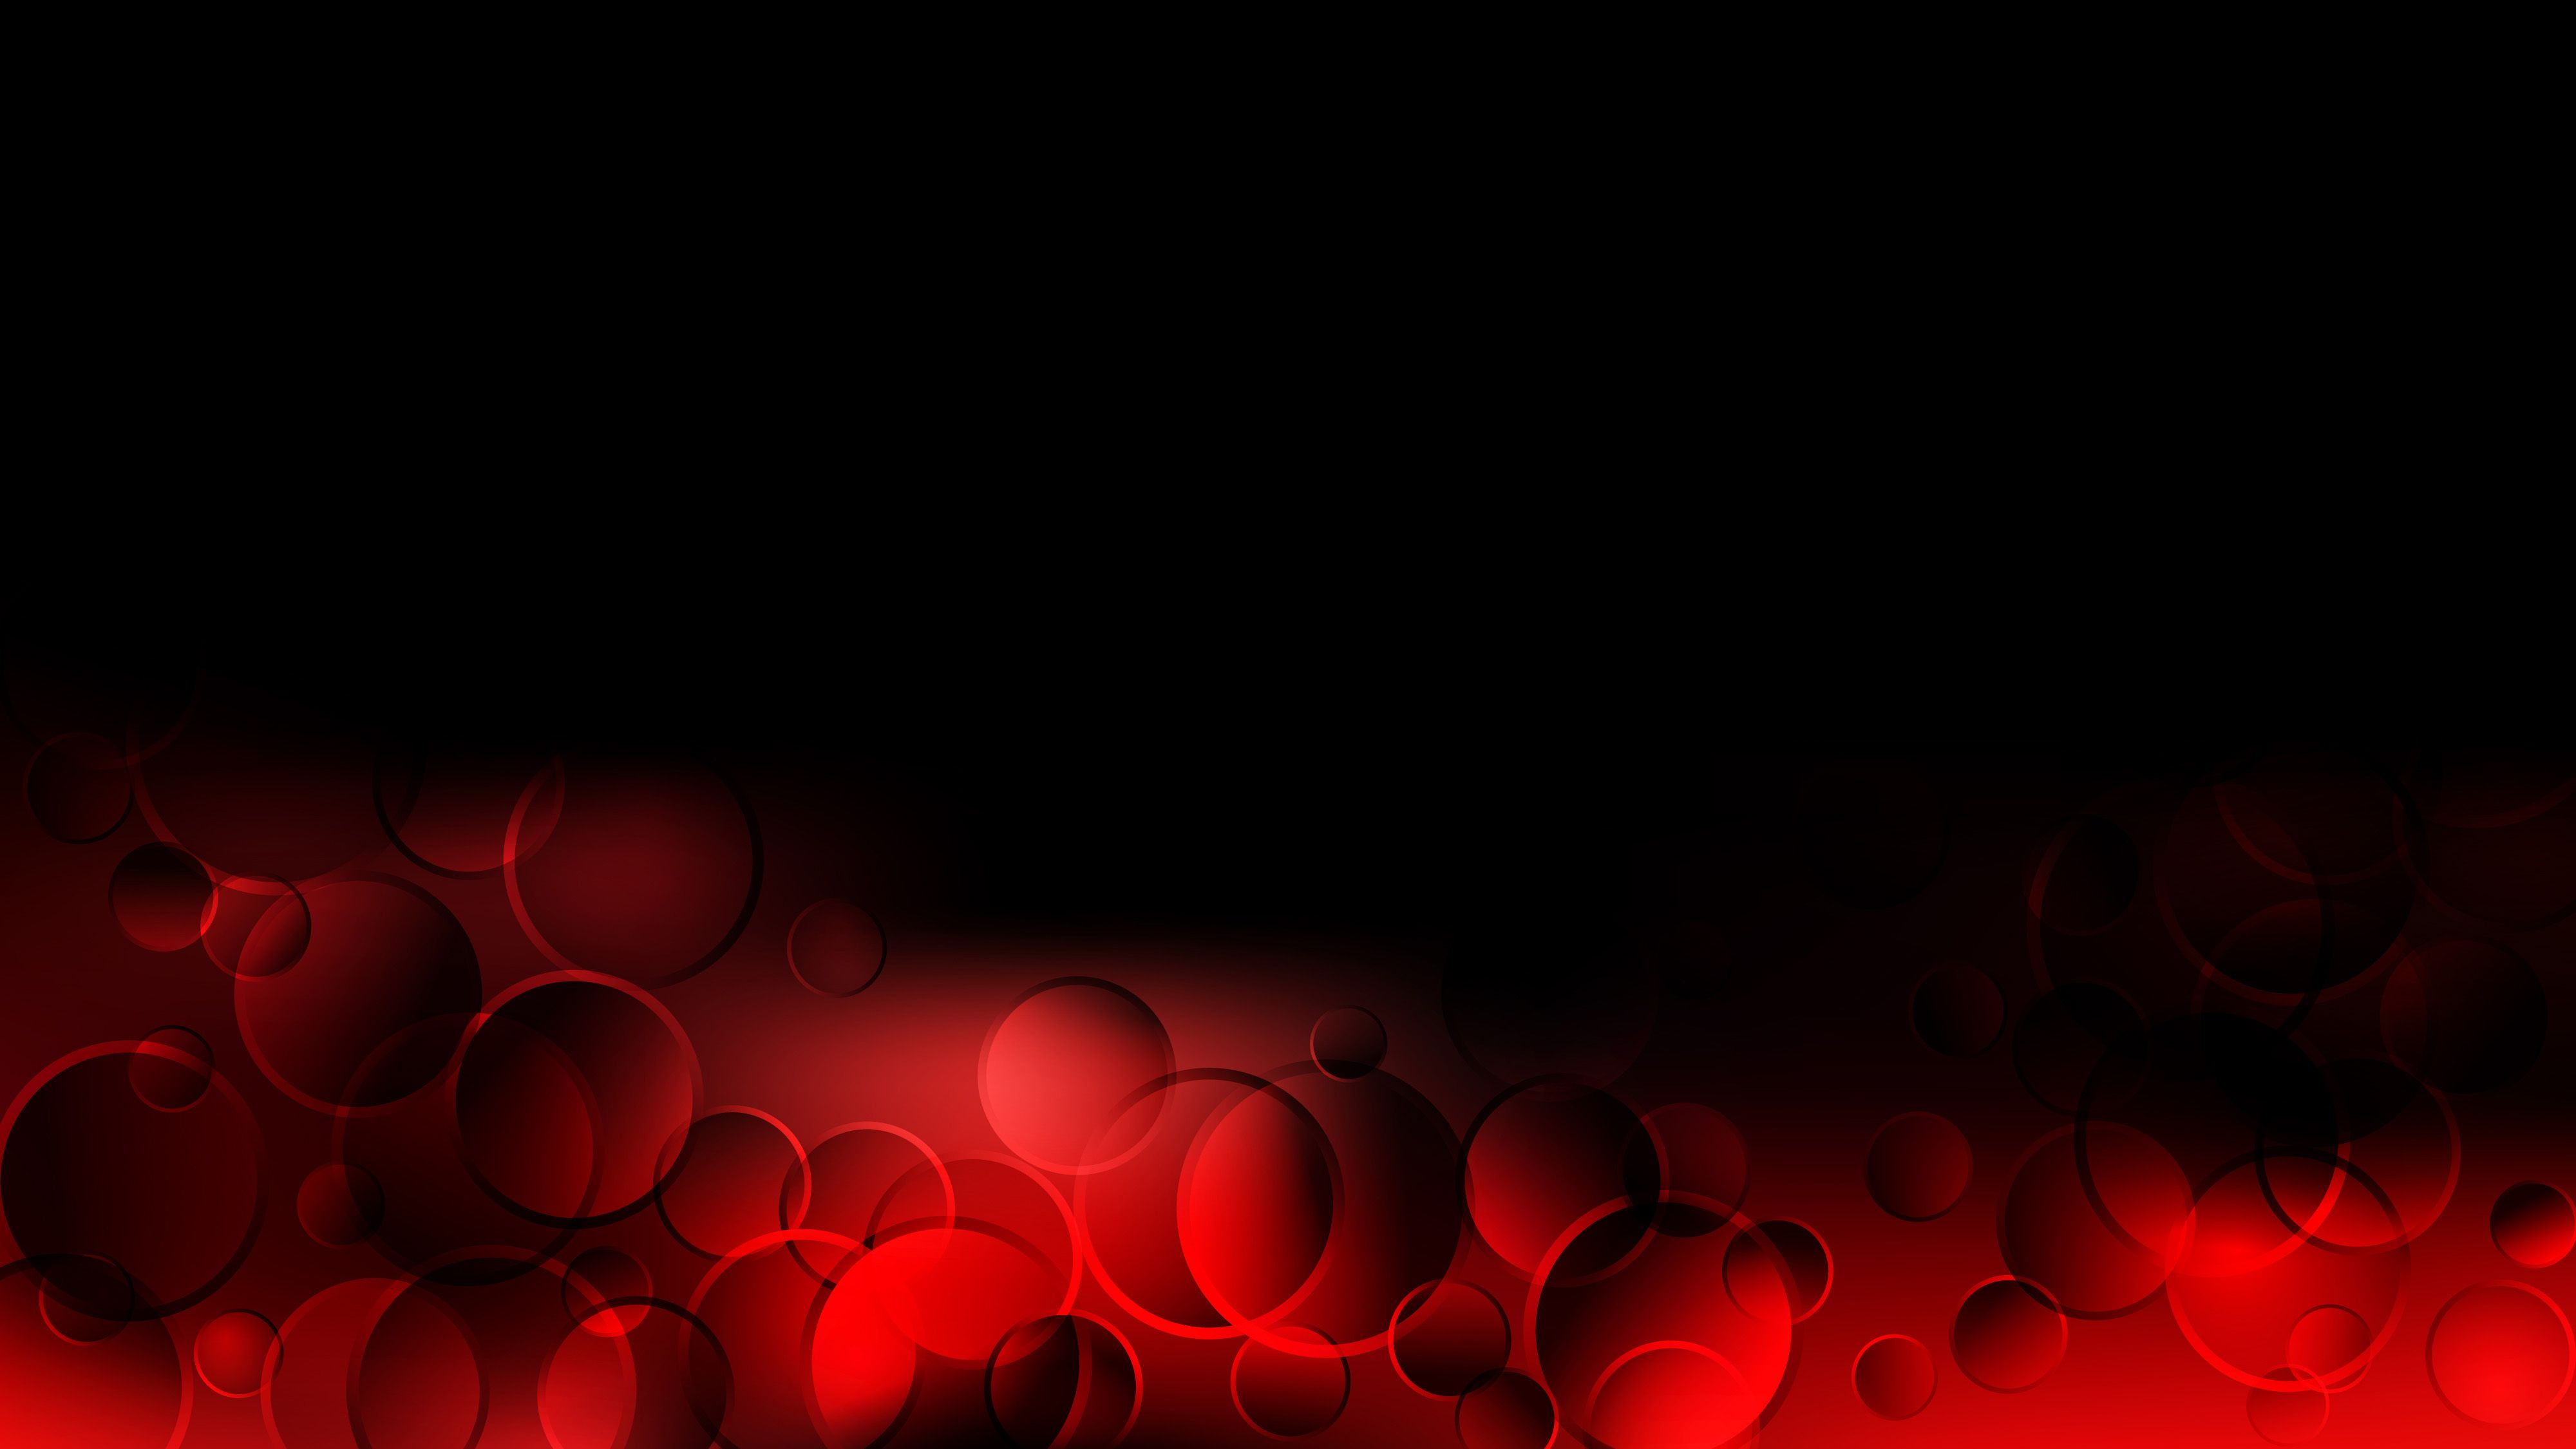 Red Black Light Free Background Image Design Graphicdesign Creative Wallpaper Backgr Free Background Images Light Background Images Background Images